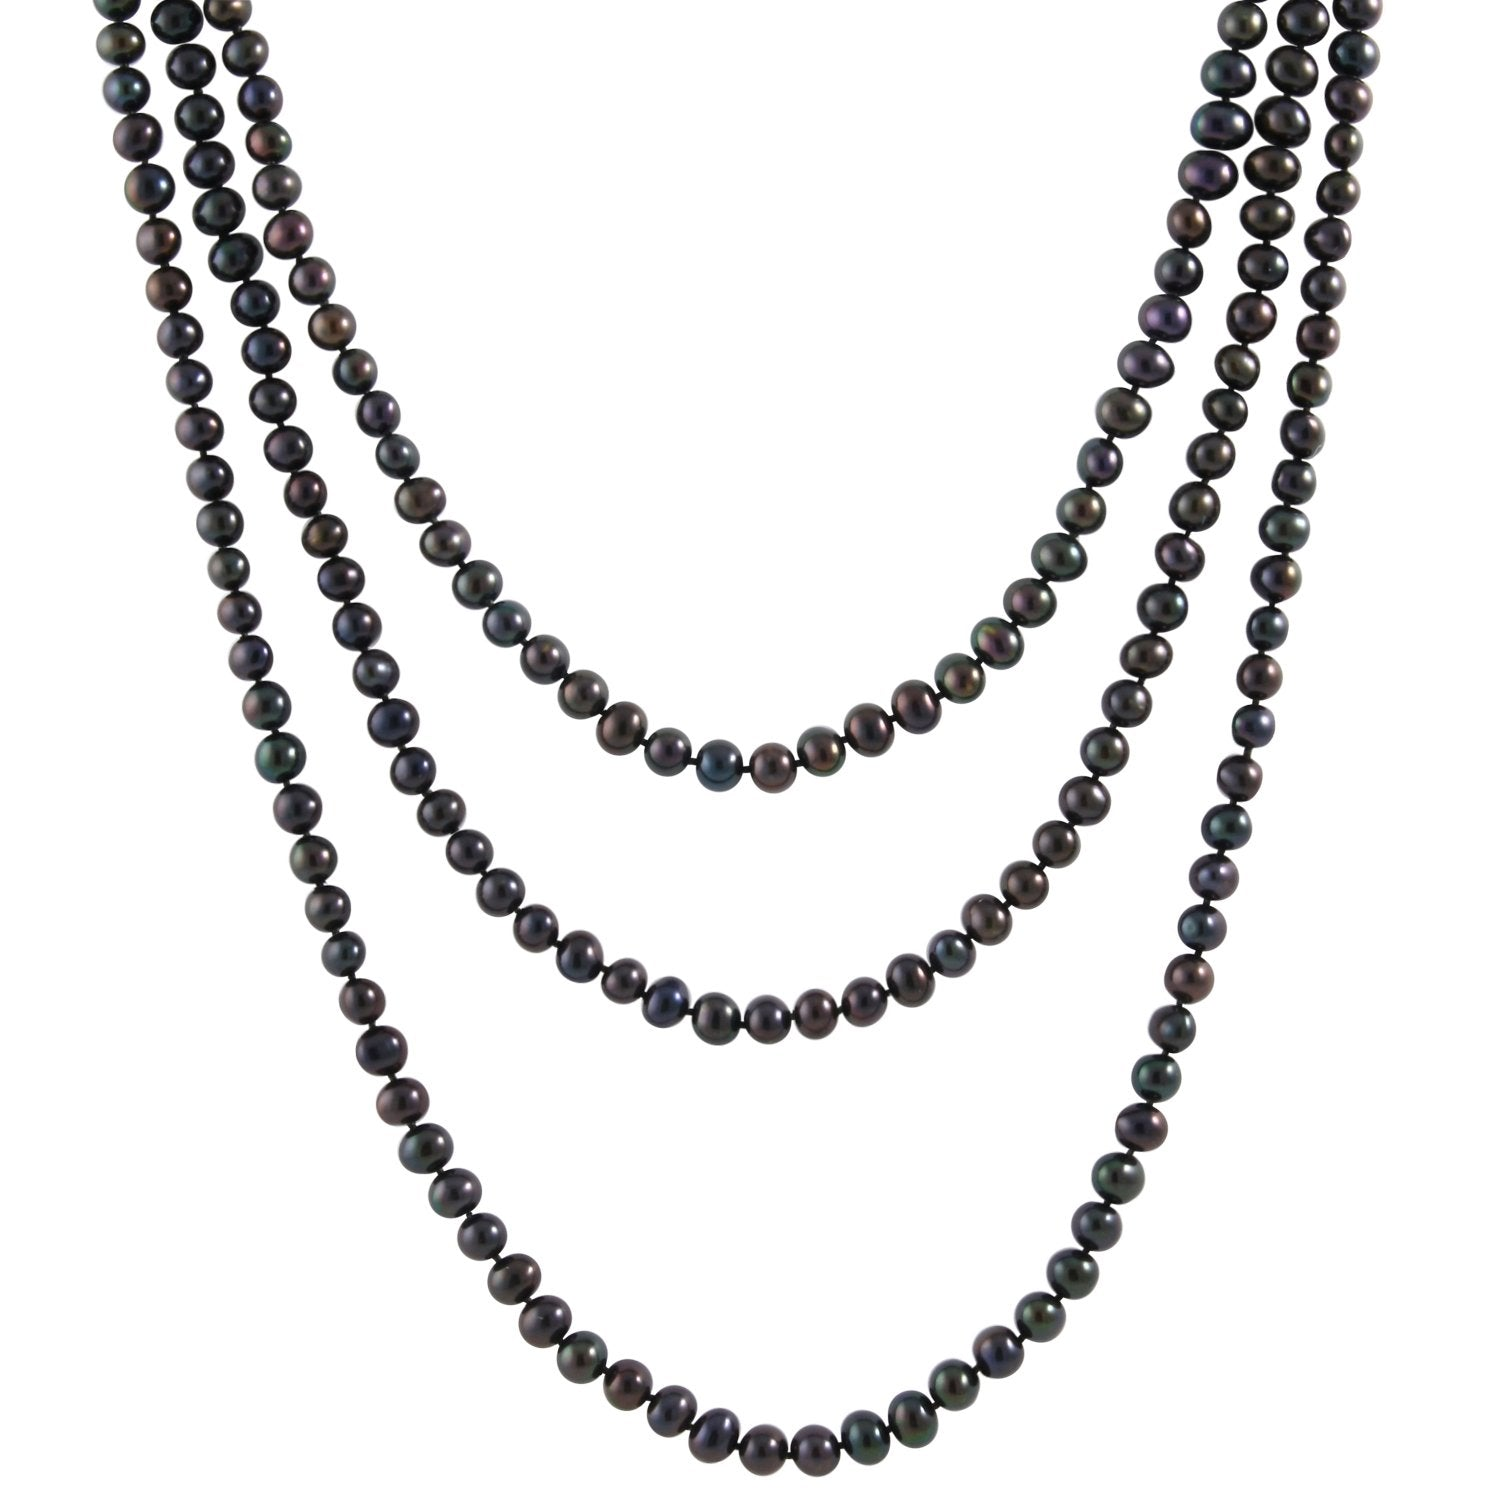 Luminous Black Pearl Endless Necklace